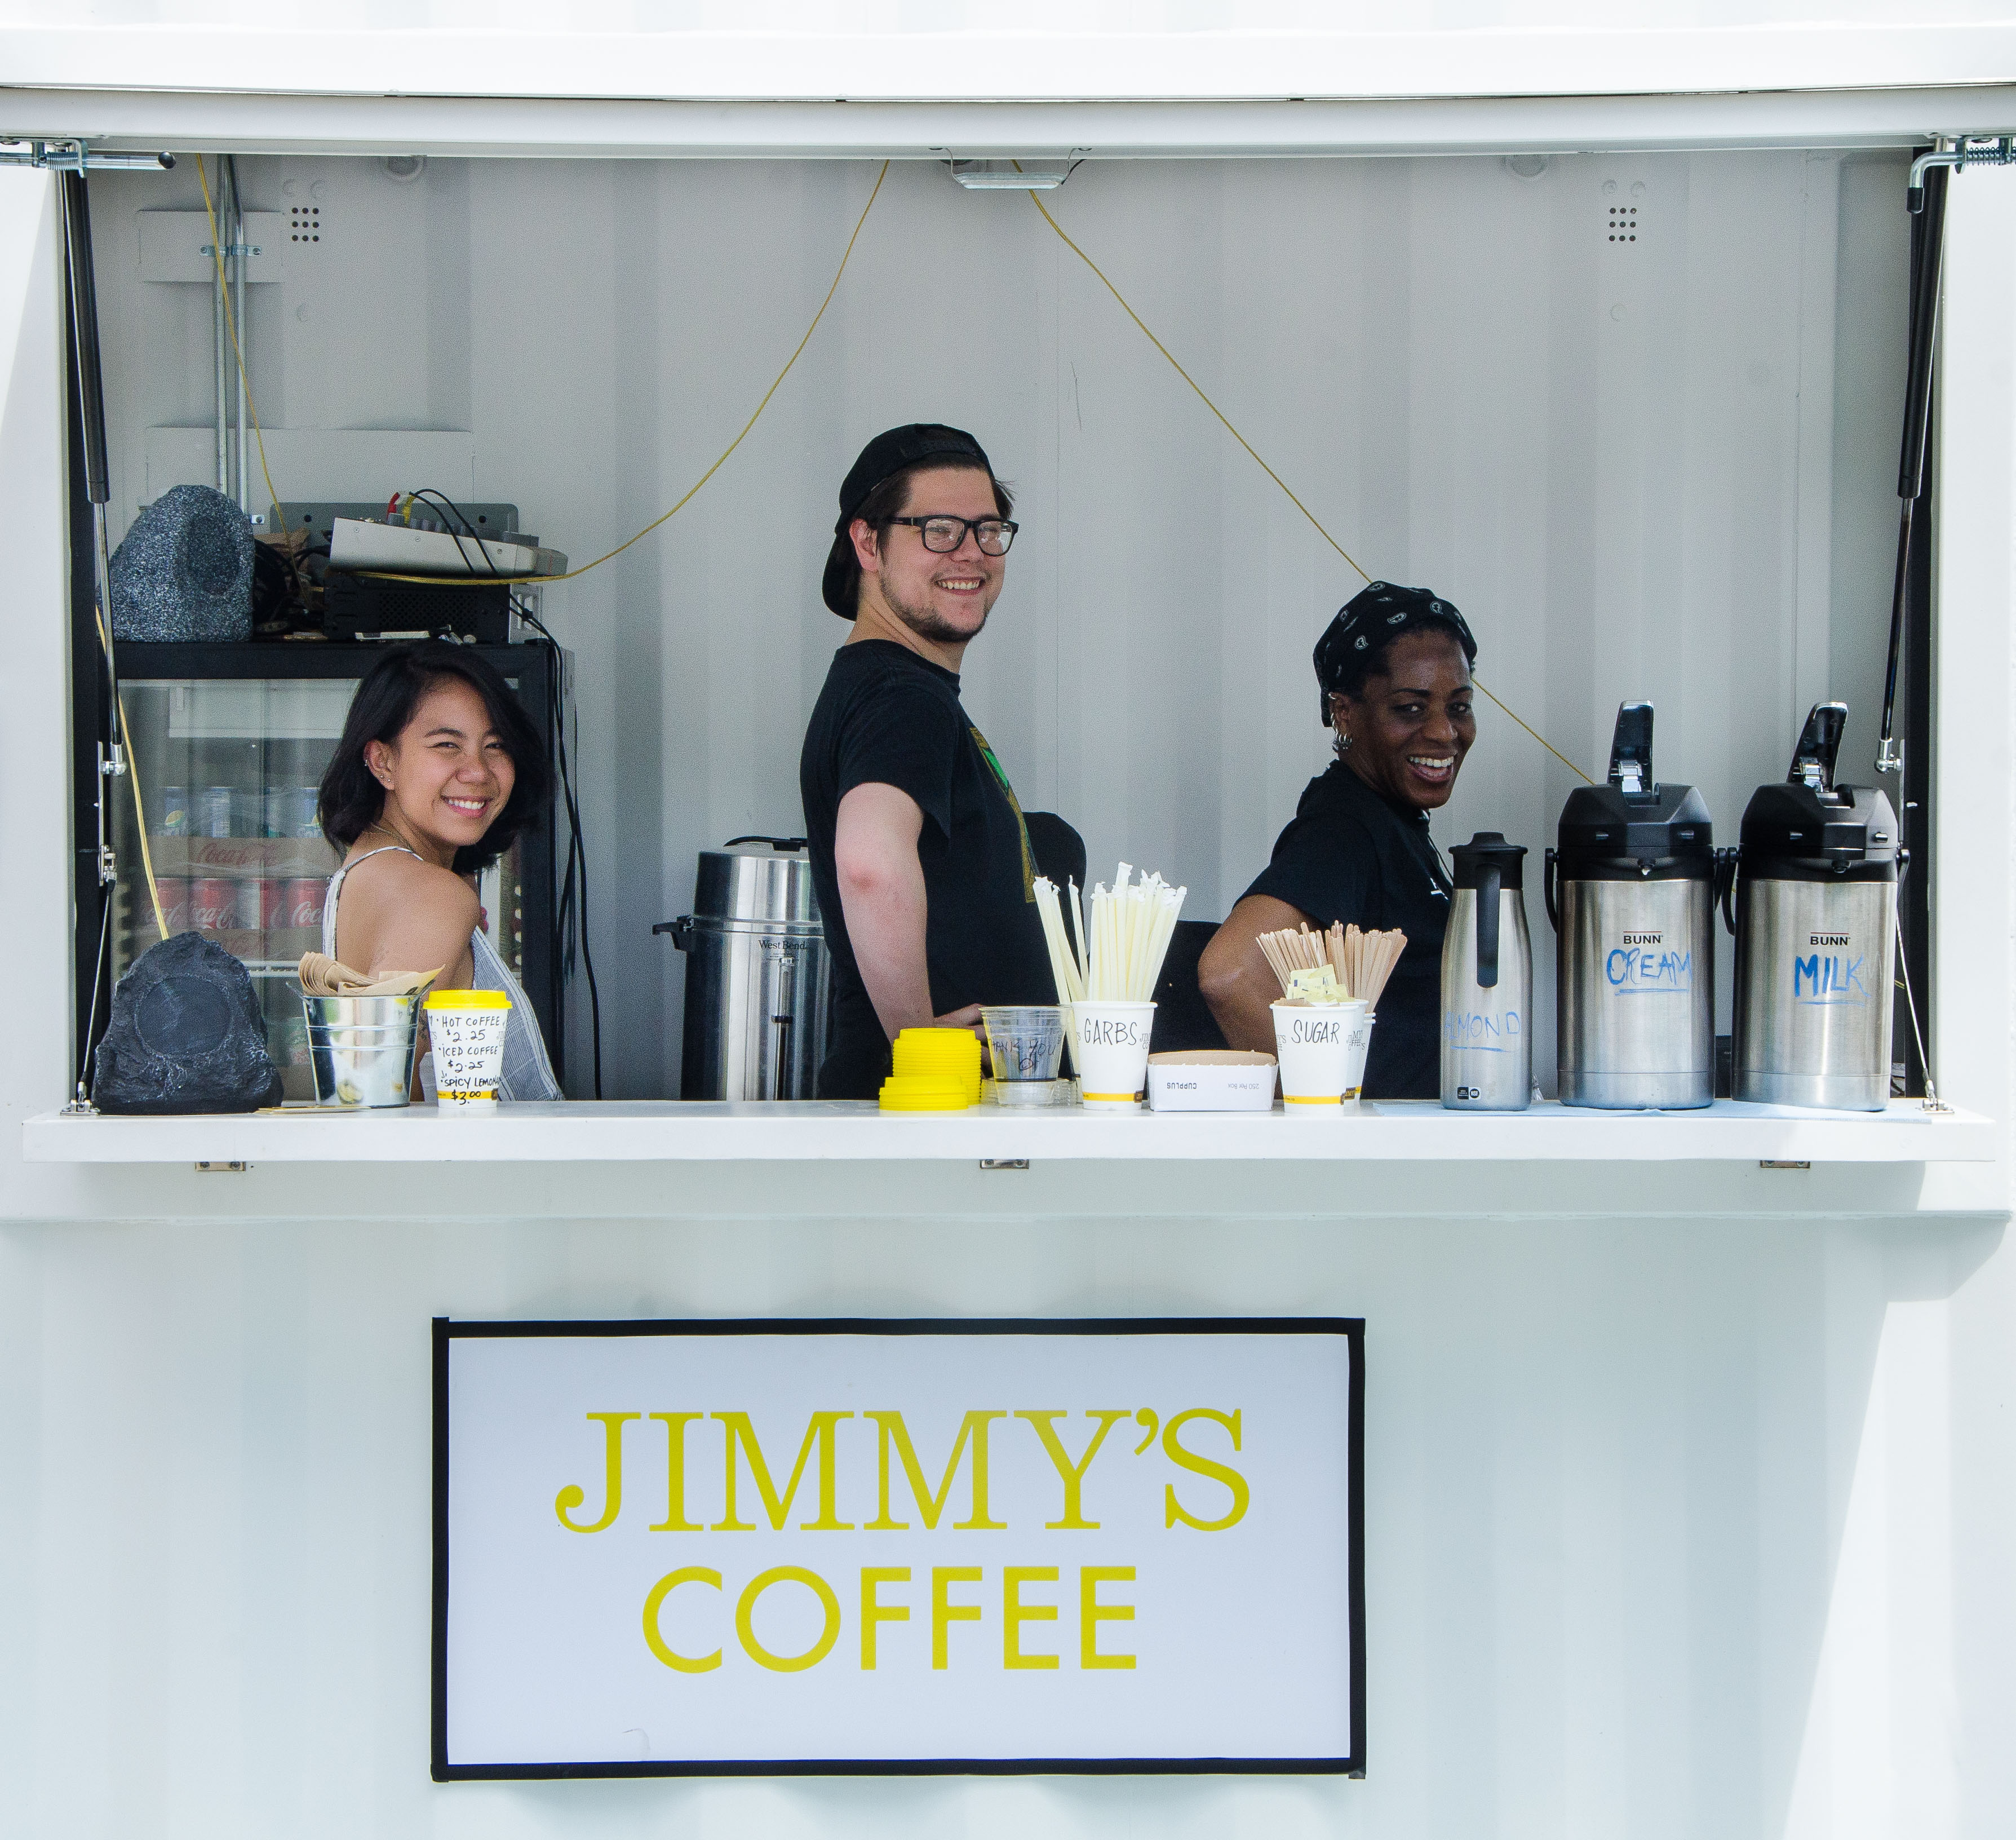 Jimmy's Coffee Staff at the Fringe Cafe